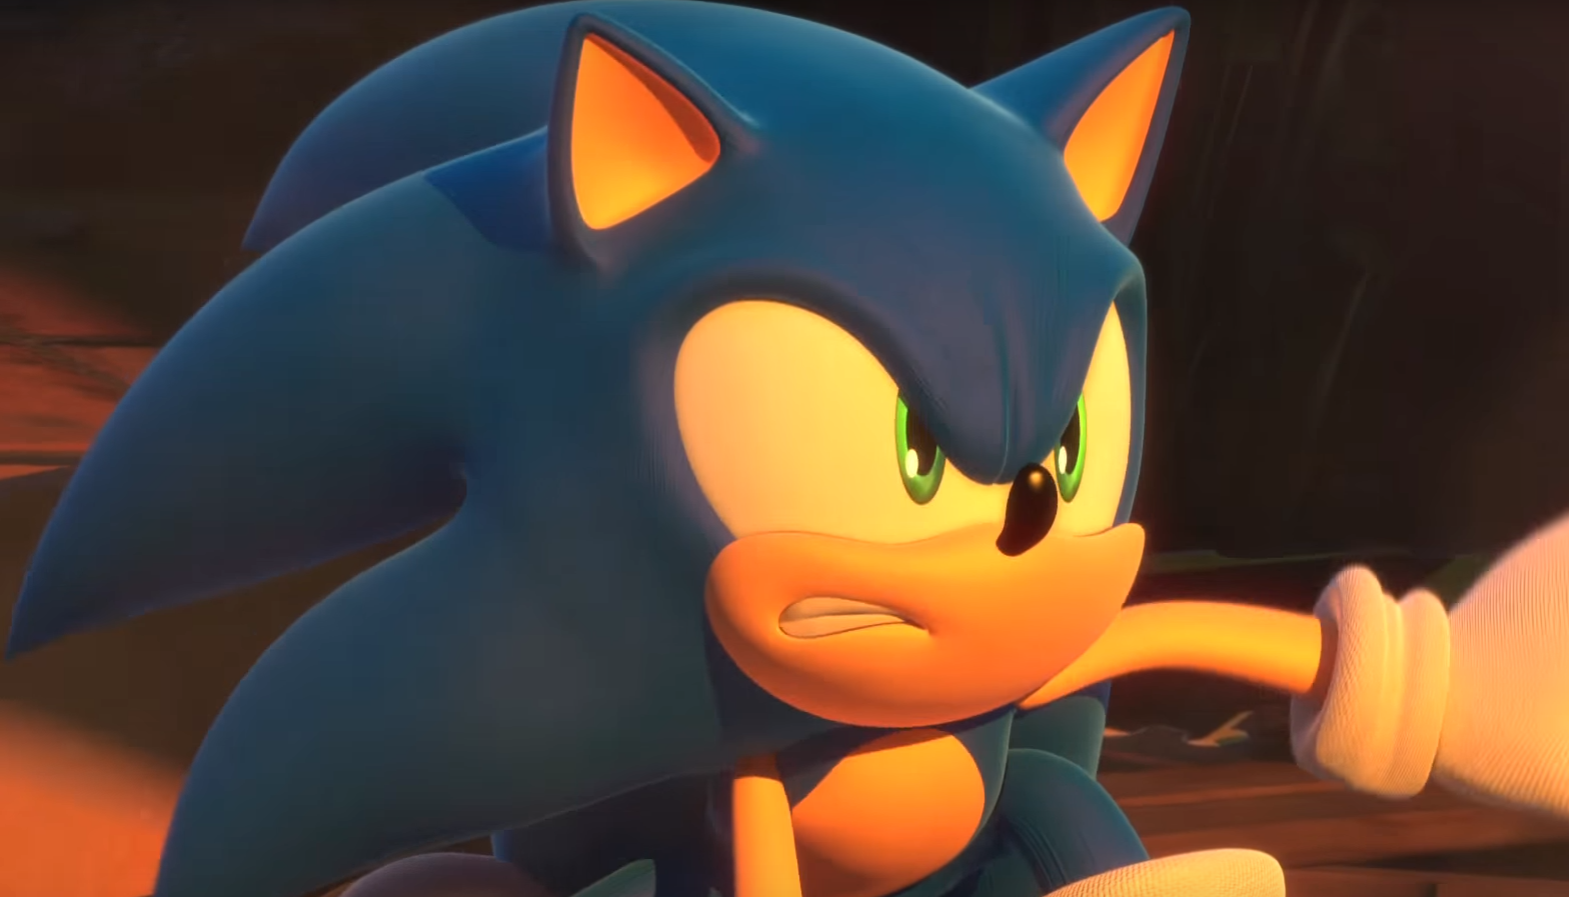 Project Sonic Sonic the Hedgehog